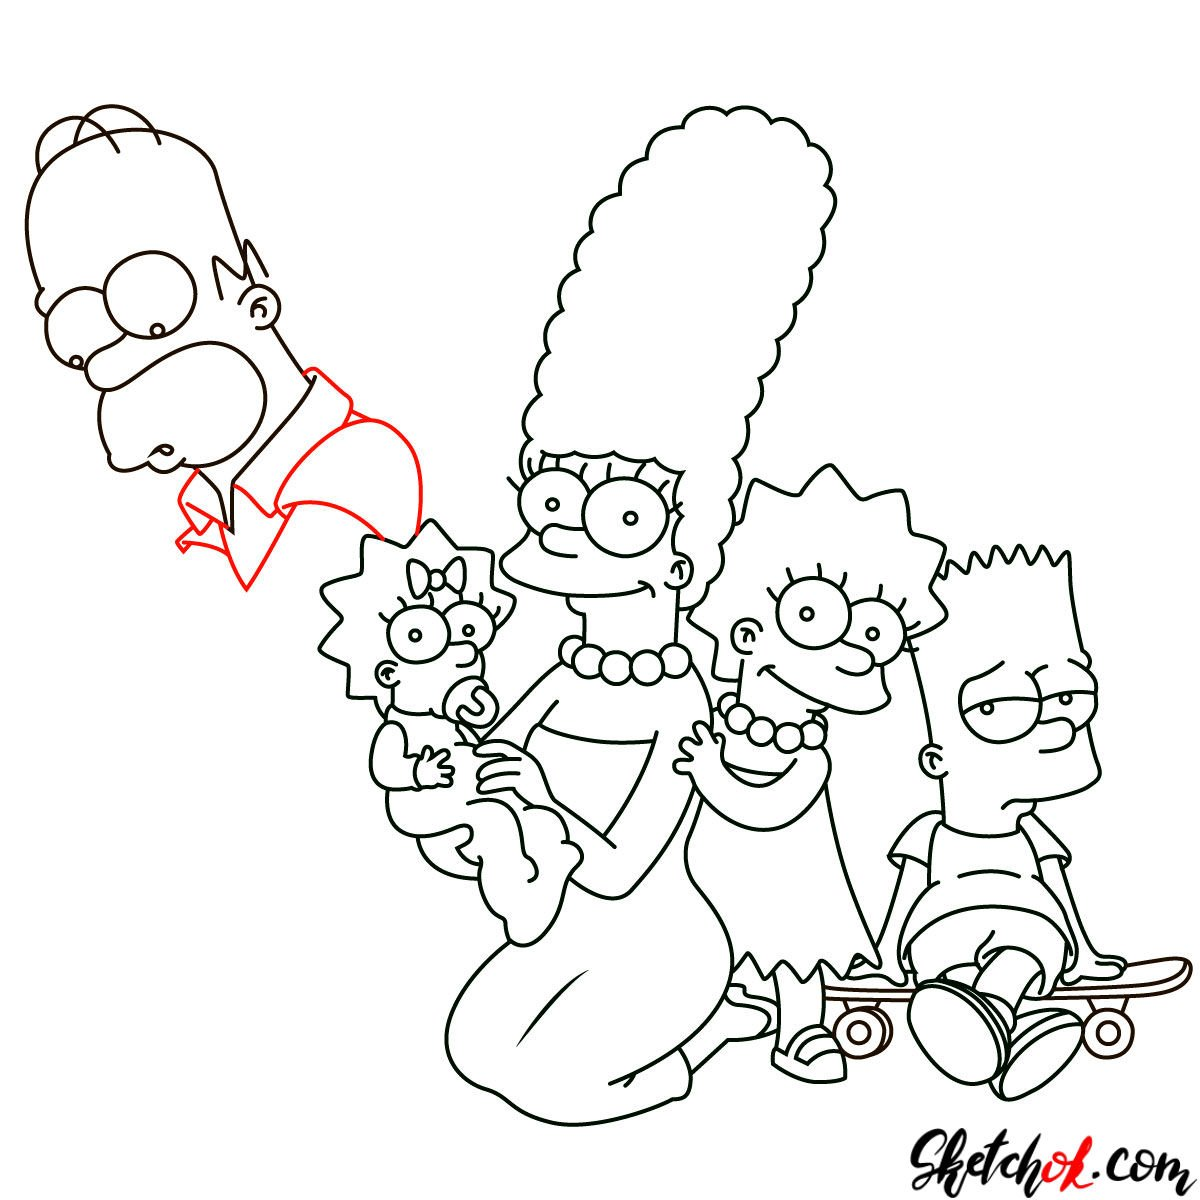 How to draw the Simpsons Family - step 26